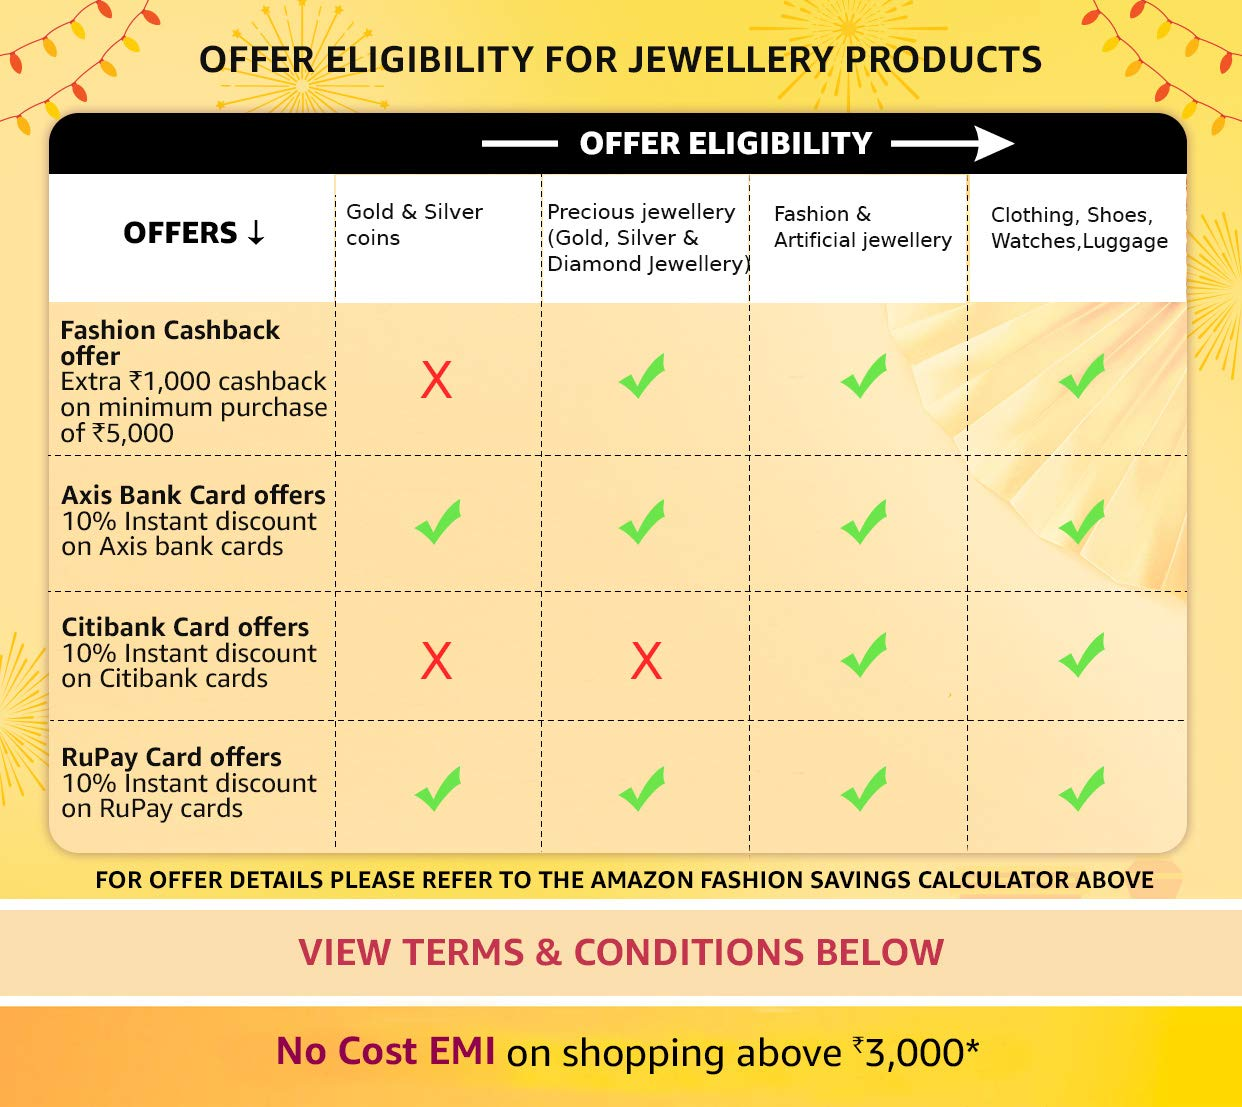 Offer eligibility